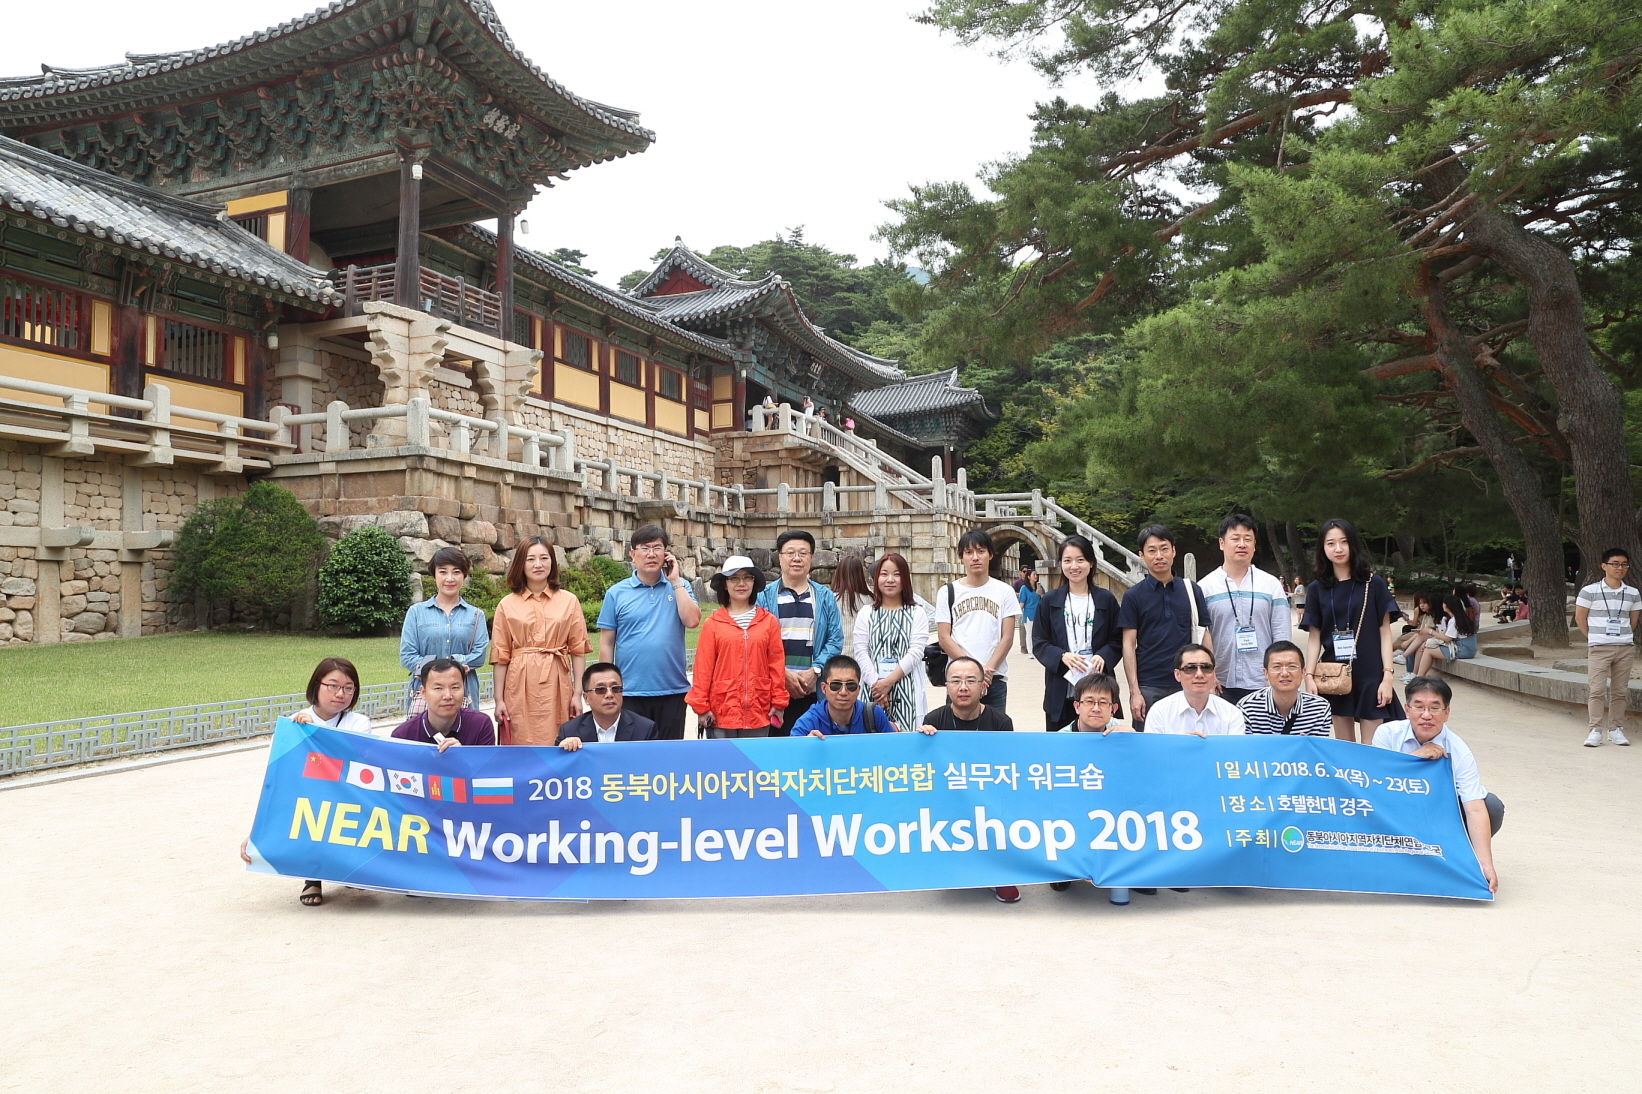 2018 NEAR Working-level Workshop - 2